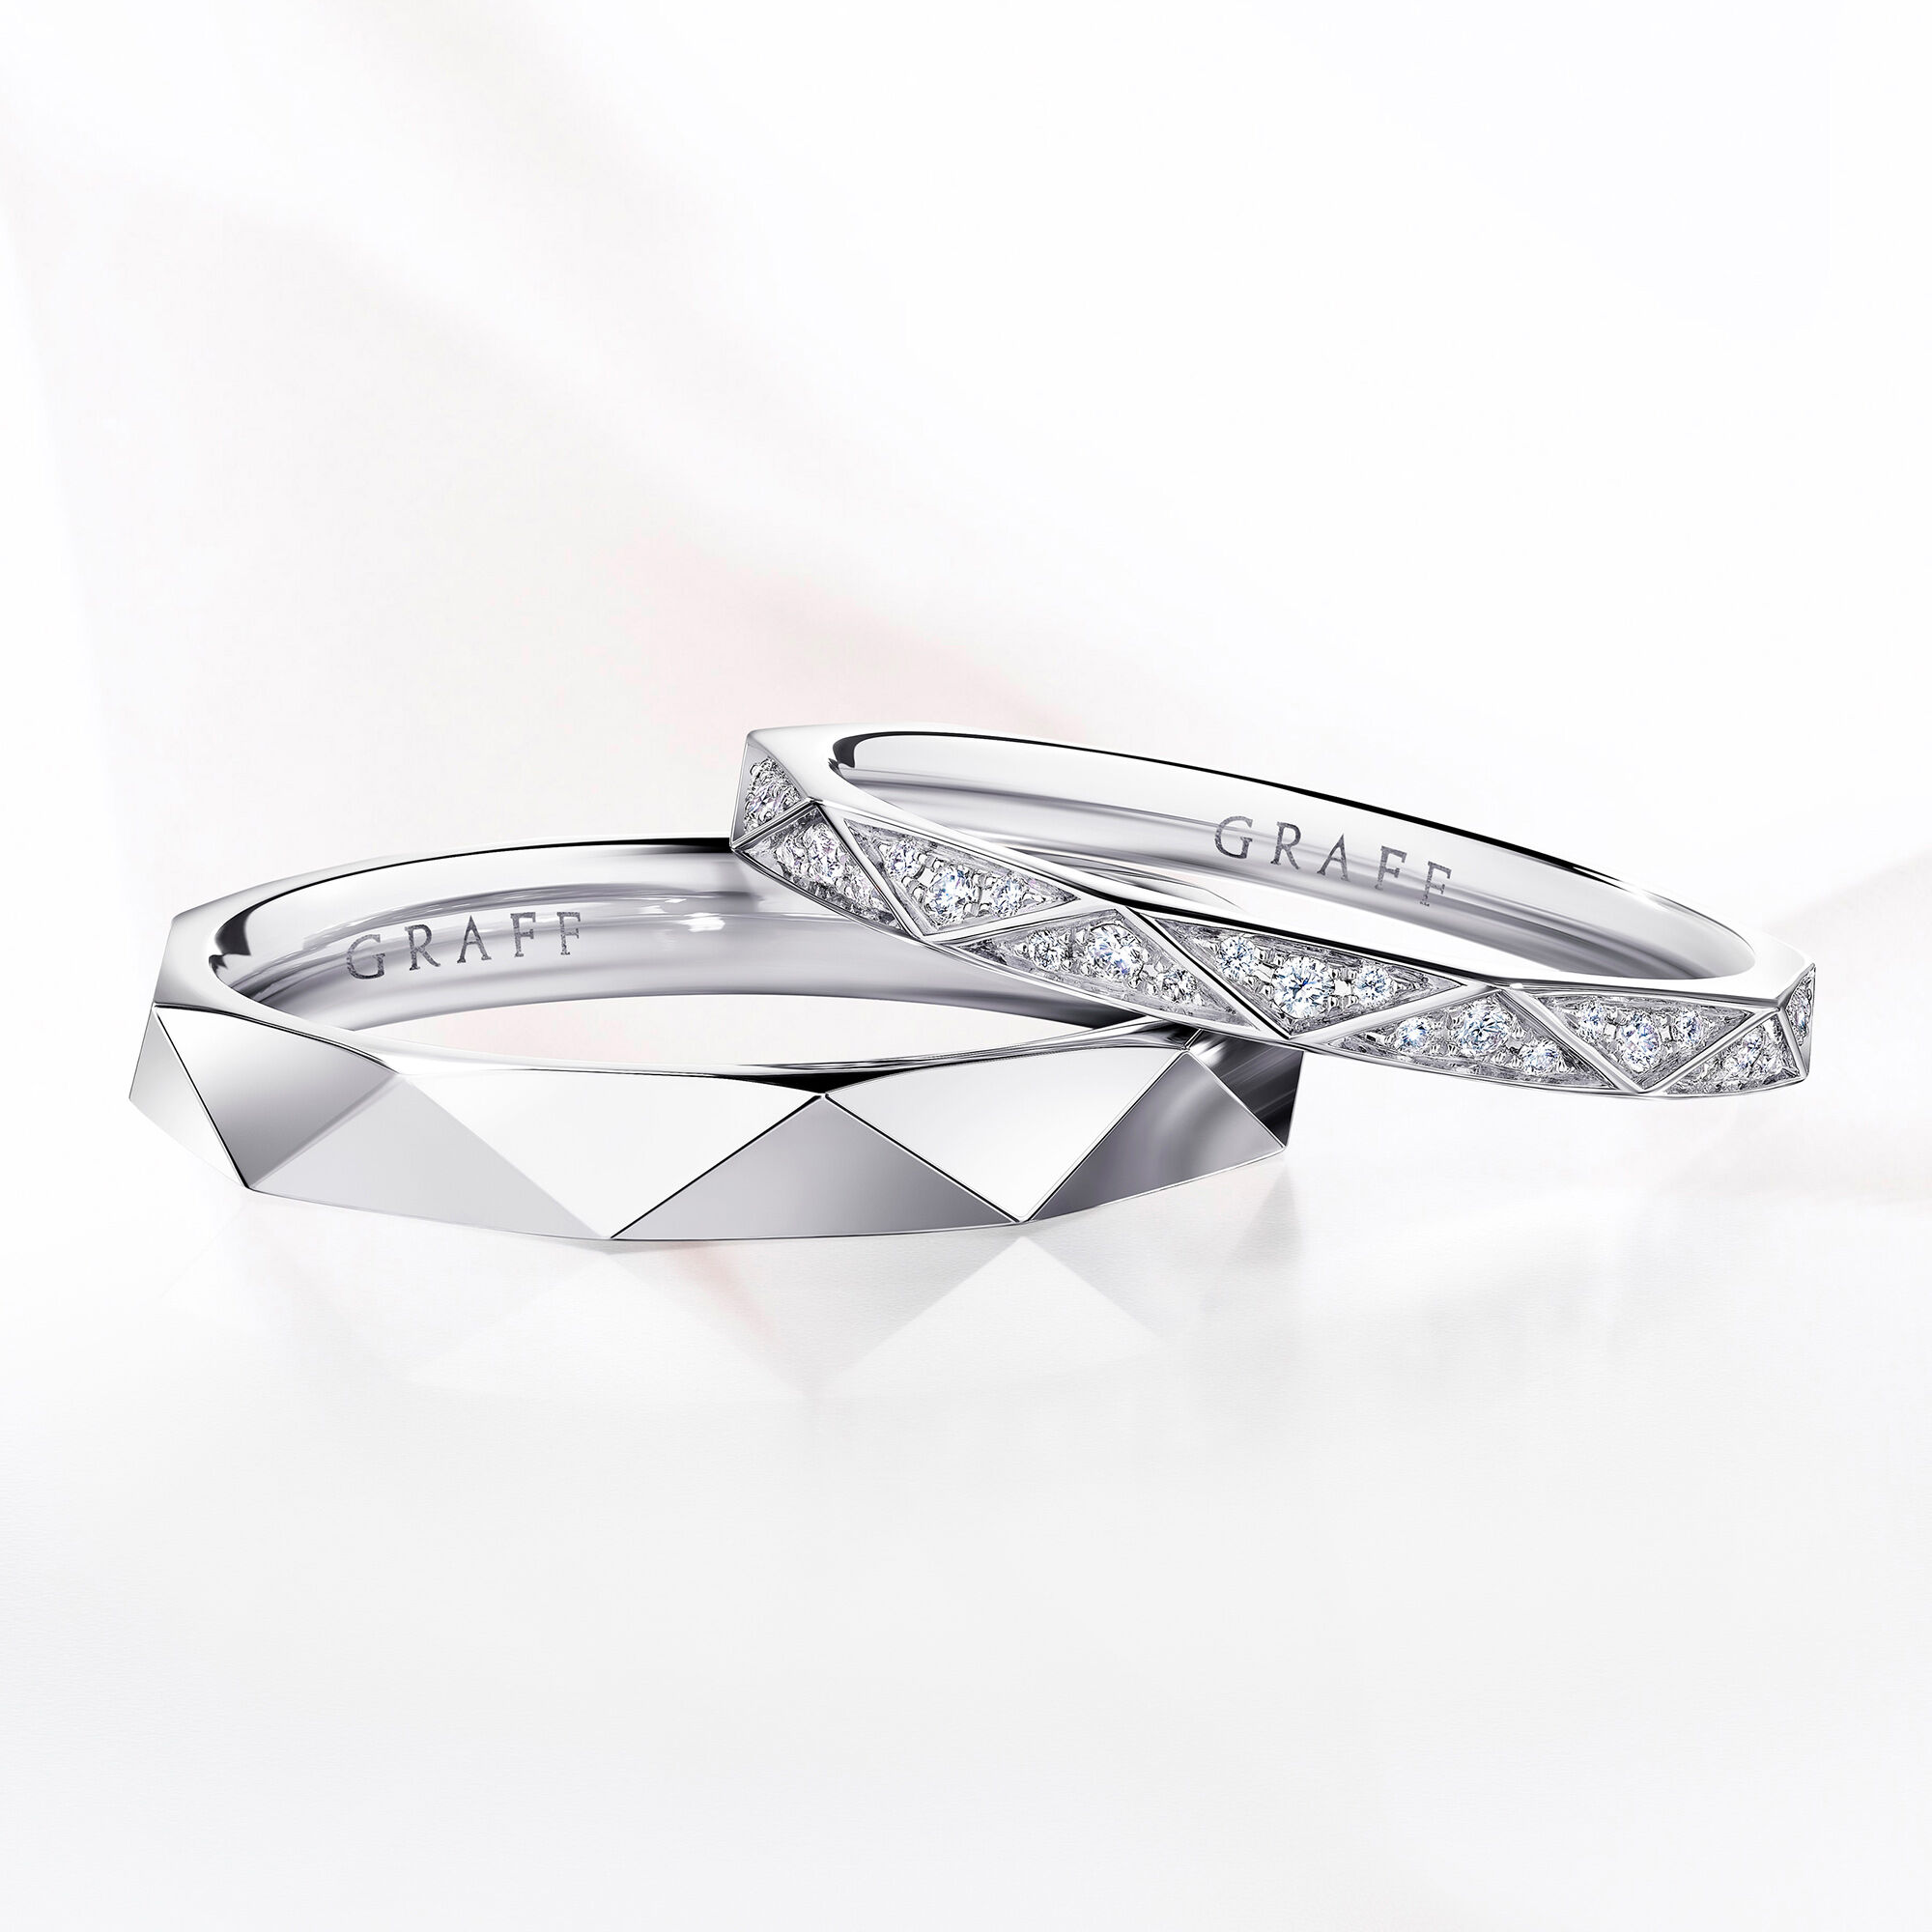 Two white gold version of the Laurence Graff Signature Wedding bands